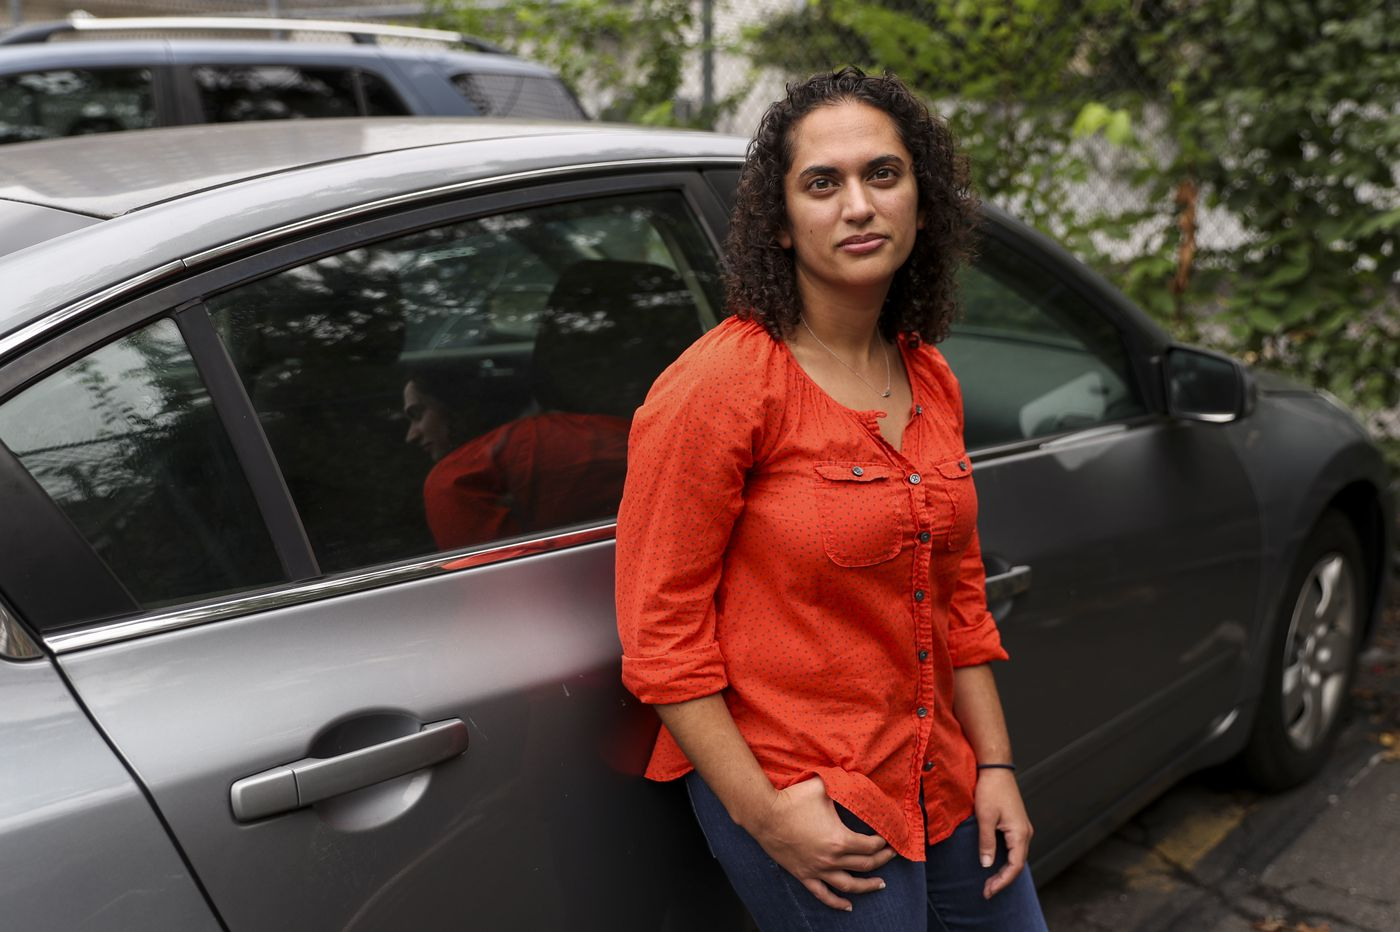 A Philly police 'courtesy tow' landed a lawyer in handcuffs for 'stealing' her own car